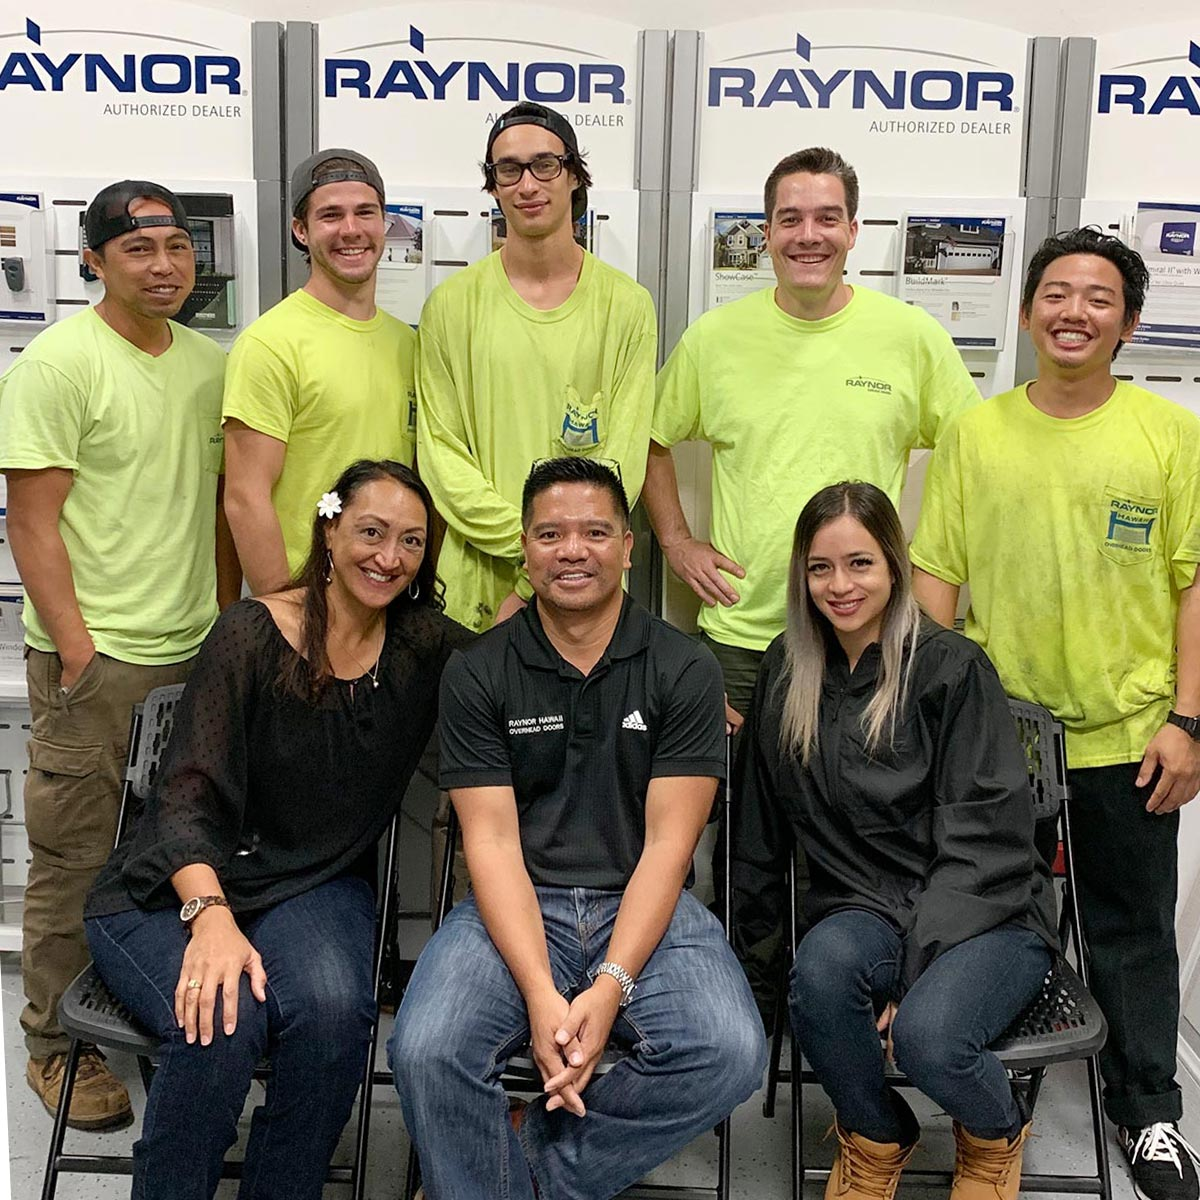 image of Raynor residential sales staff.